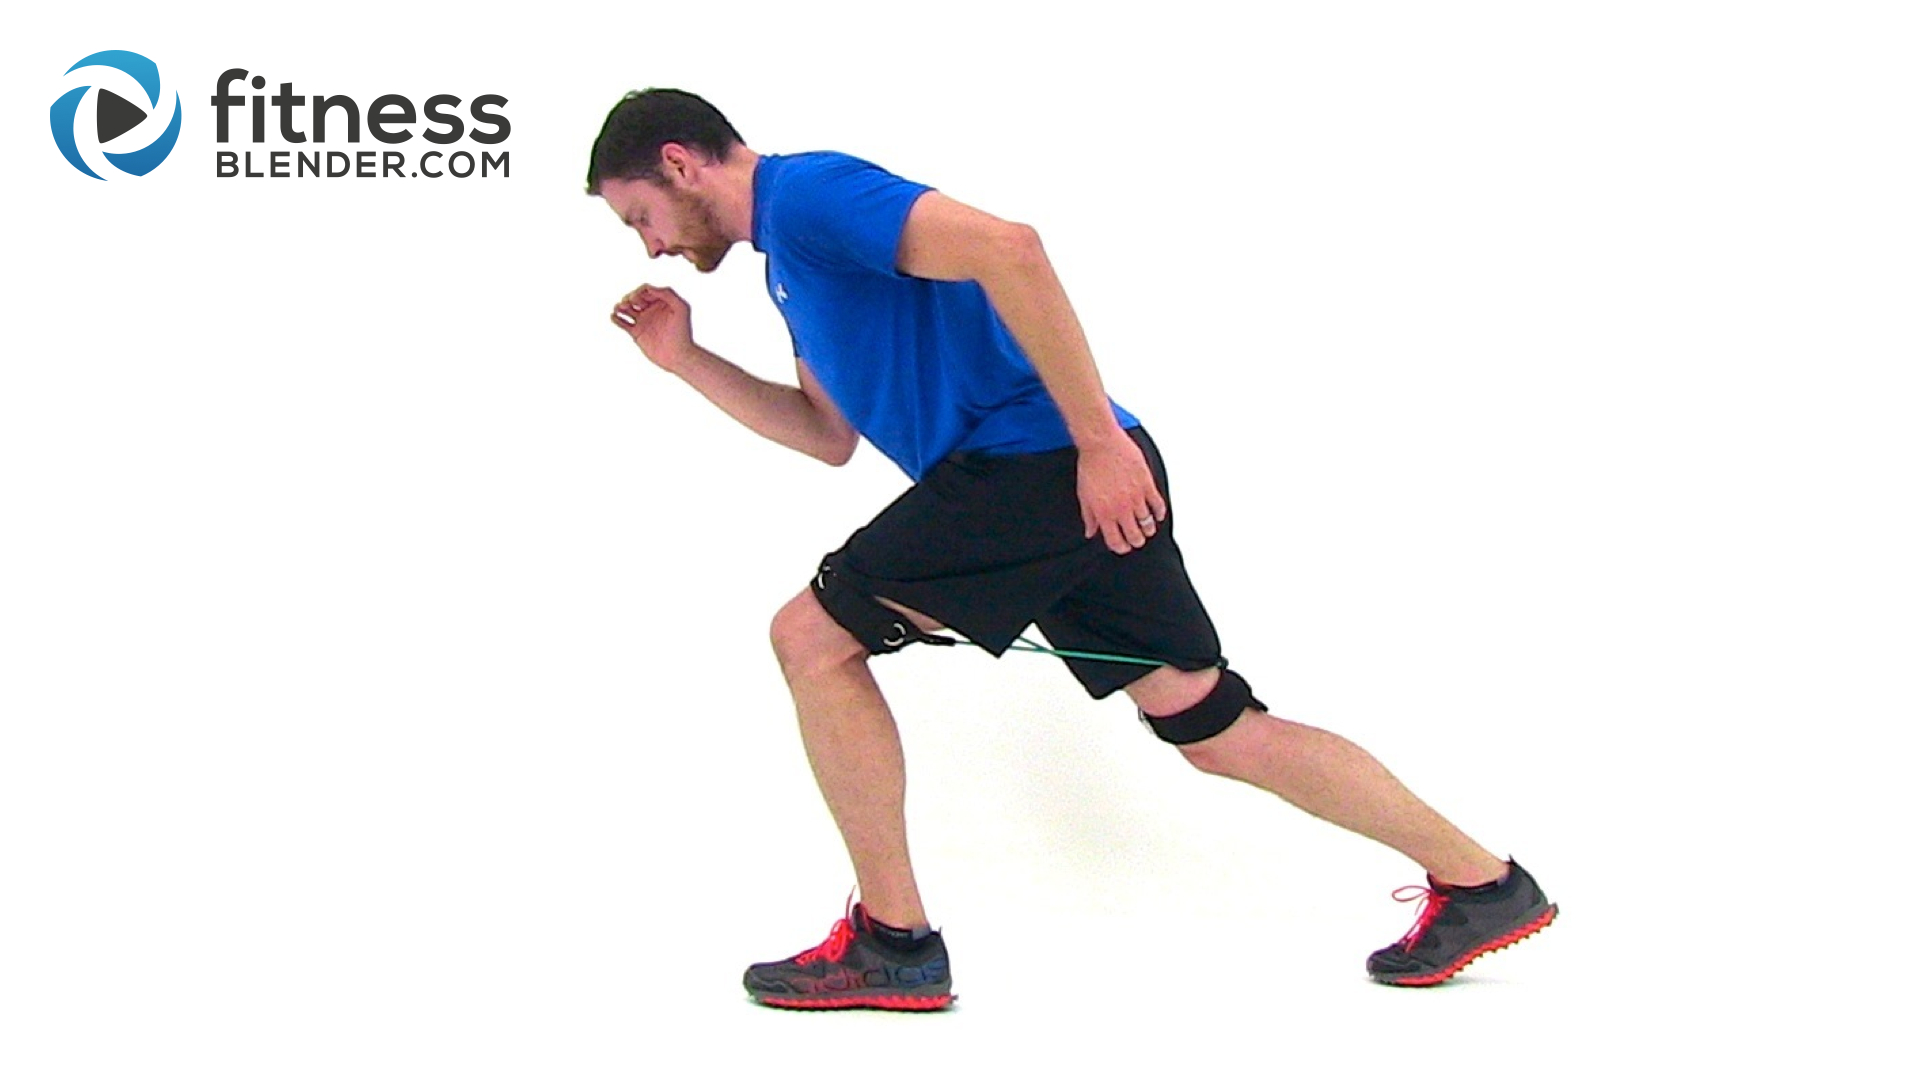 Speed Training Workout with Bands - Resistance Band HIIT for Power and Speed